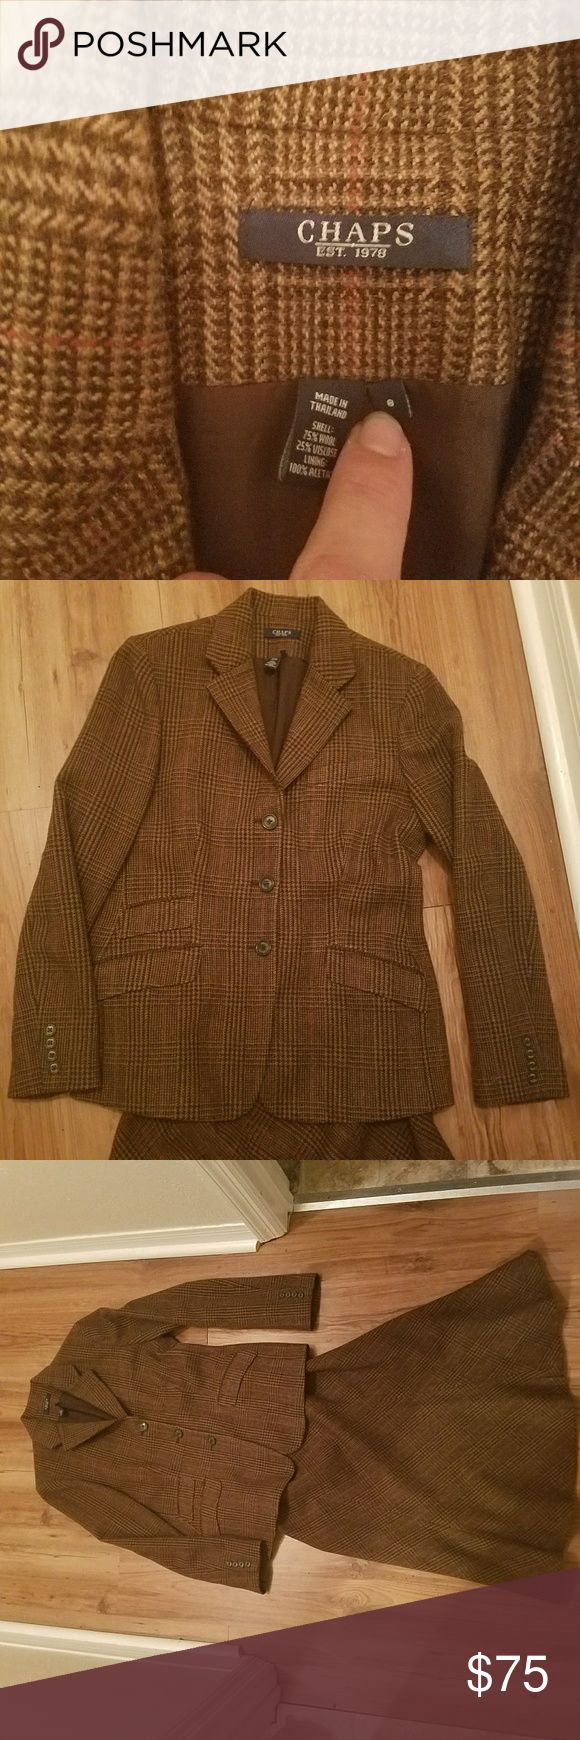 Chaps Ralph Lauren Brown Tweet Skirt Suit 3 button blazer with calf length fitted tulip skirt. Fully lined jacket and skirt. Beautiful brown plaid with stripes of red. Classic style, super quality suit. Gorgeous with a maroon top and gold pumps! Worn once, dry cleaned and hung. Chaps Skirts Skirt Sets